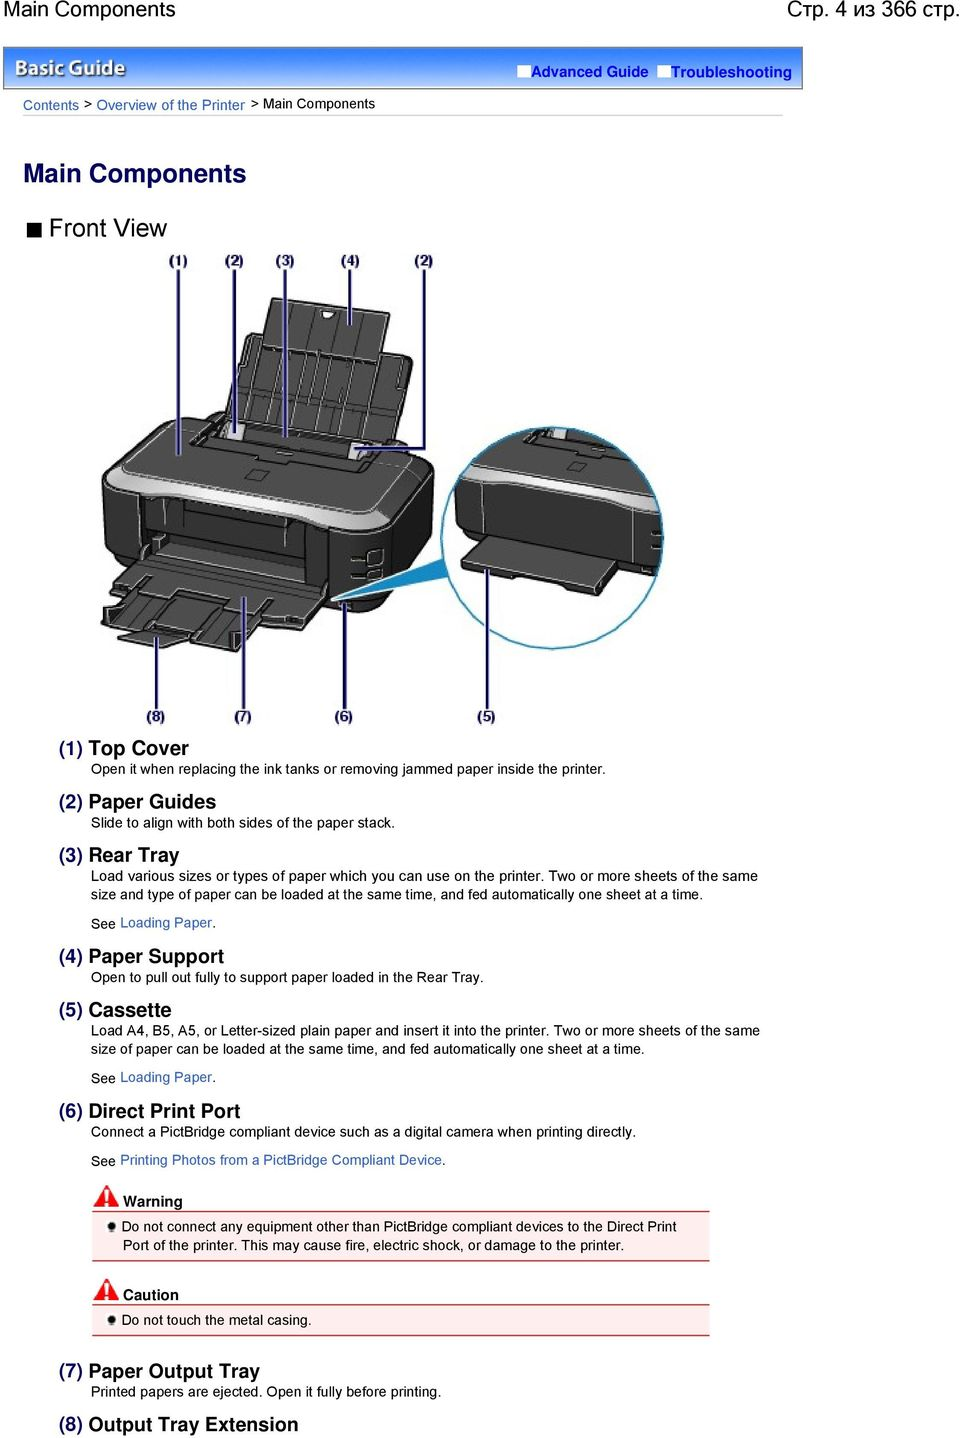 printer. (2) Paper Guides Slide to align with both sides of the paper stack. (3) Rear Tray Load various sizes or types of paper which you can use on the printer.